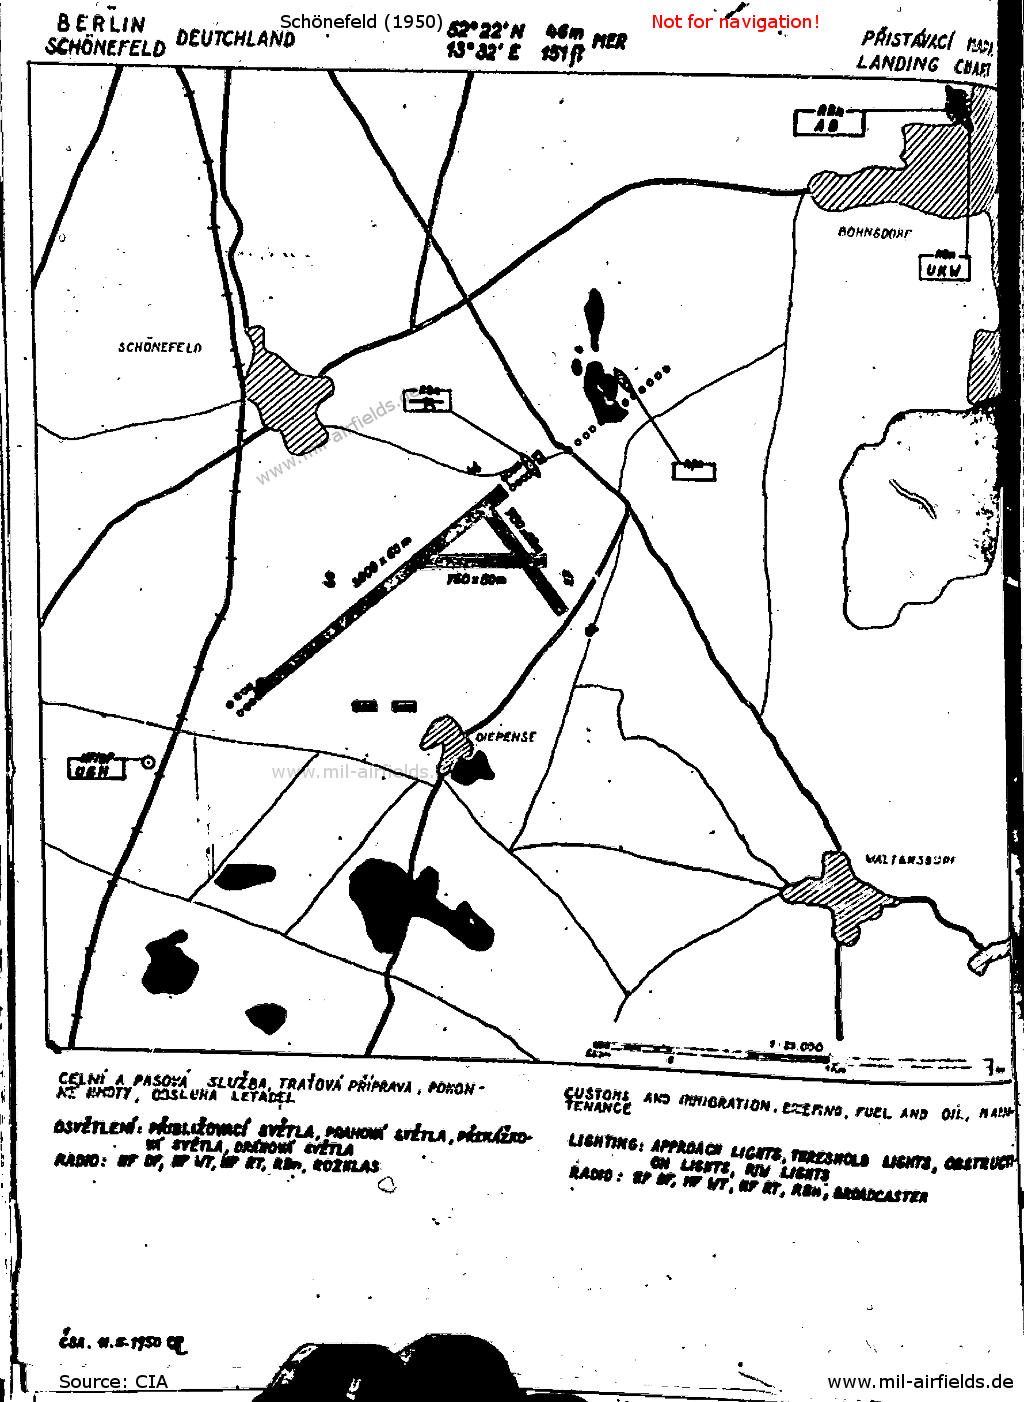 Map of Schönefeld airport from the Czechoslovak aeronautical publication from 1950